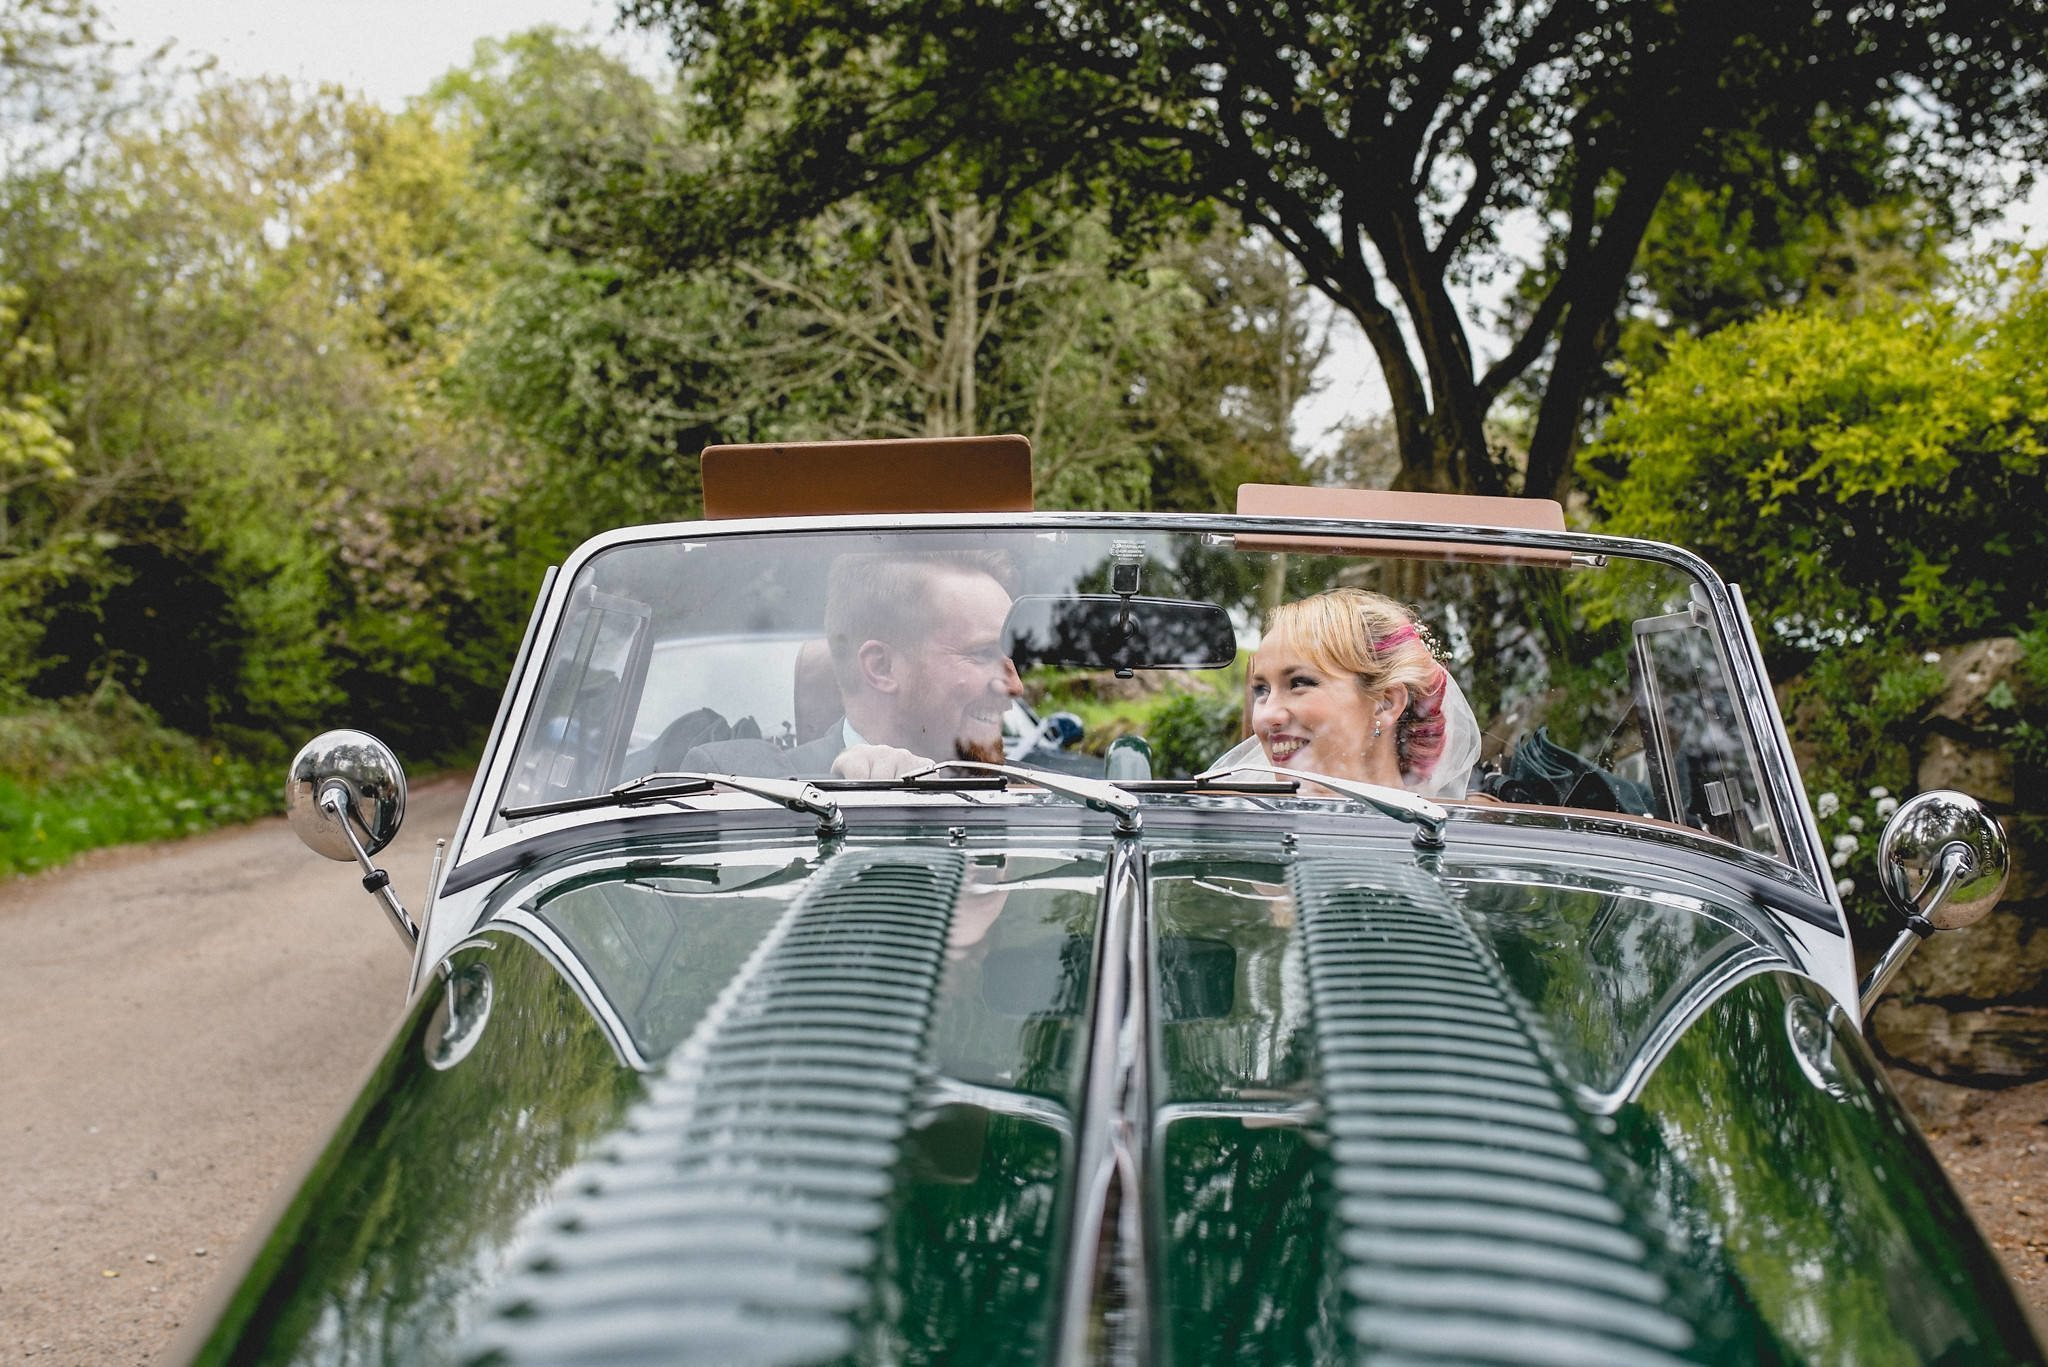 Hatty and Steven are seated in the green vintage Morgan, ready to drive from the ceremony to the reception